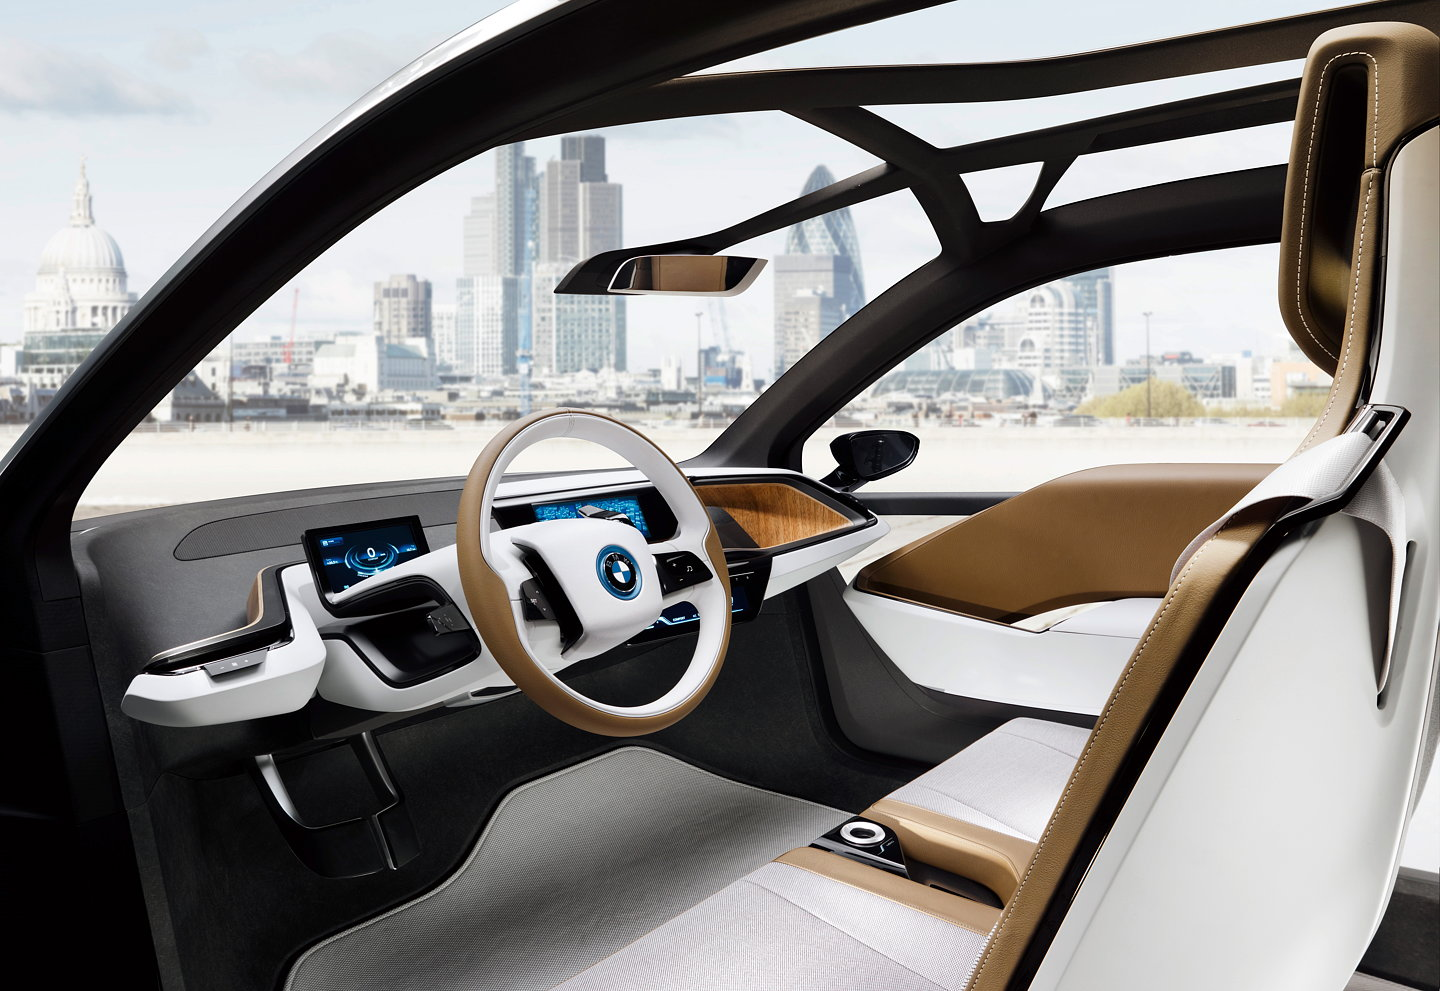 First Bmw I Store Opens In London New Bmw I3 Concept And Bmw I Pedelec Concept